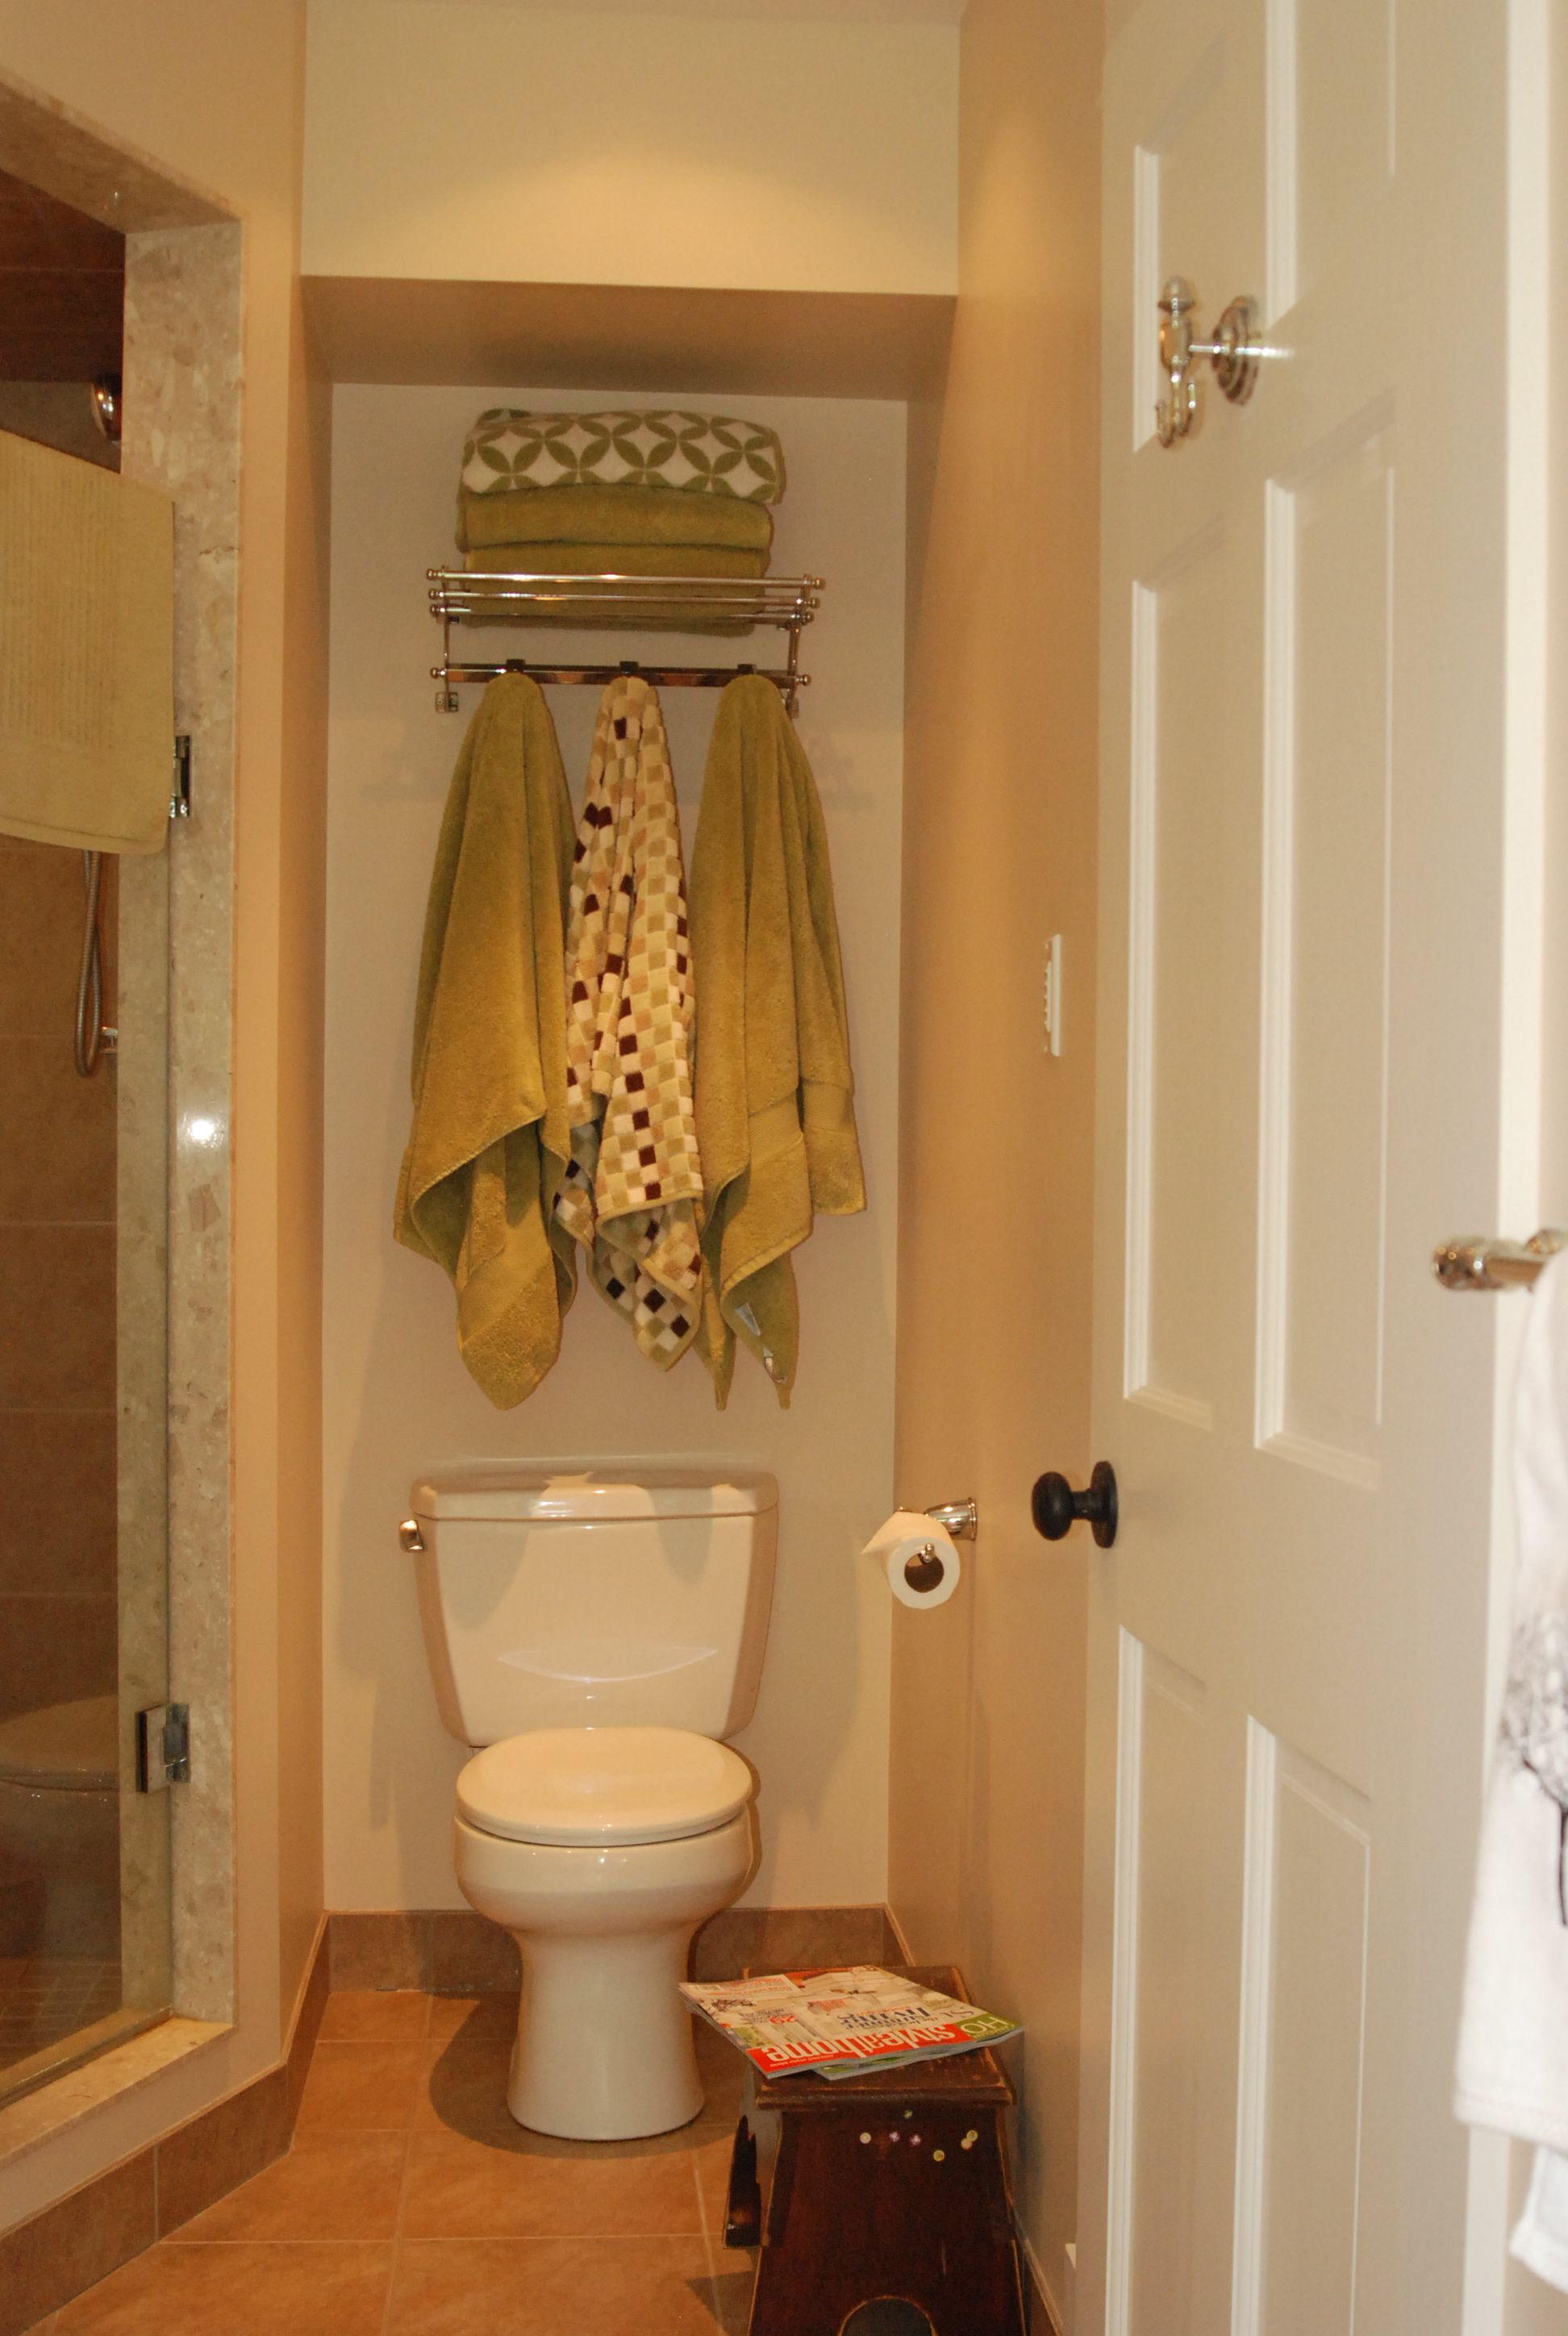 Could store towels above toilet | N>H> Bathrooms | Pinterest ...